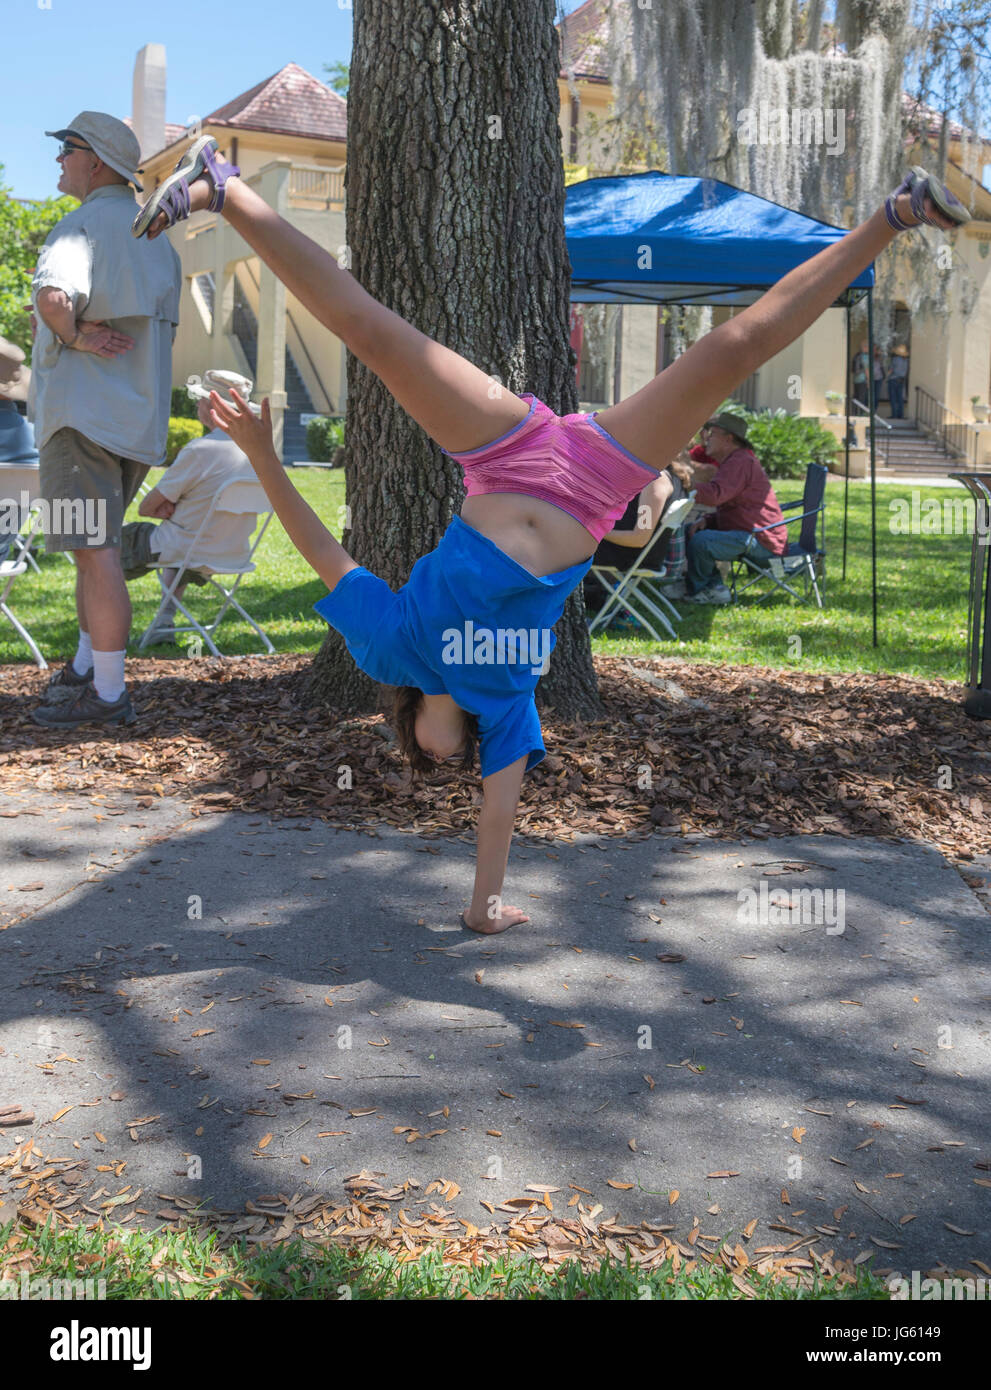 Girl does cartwheel at art festival. - Stock Image